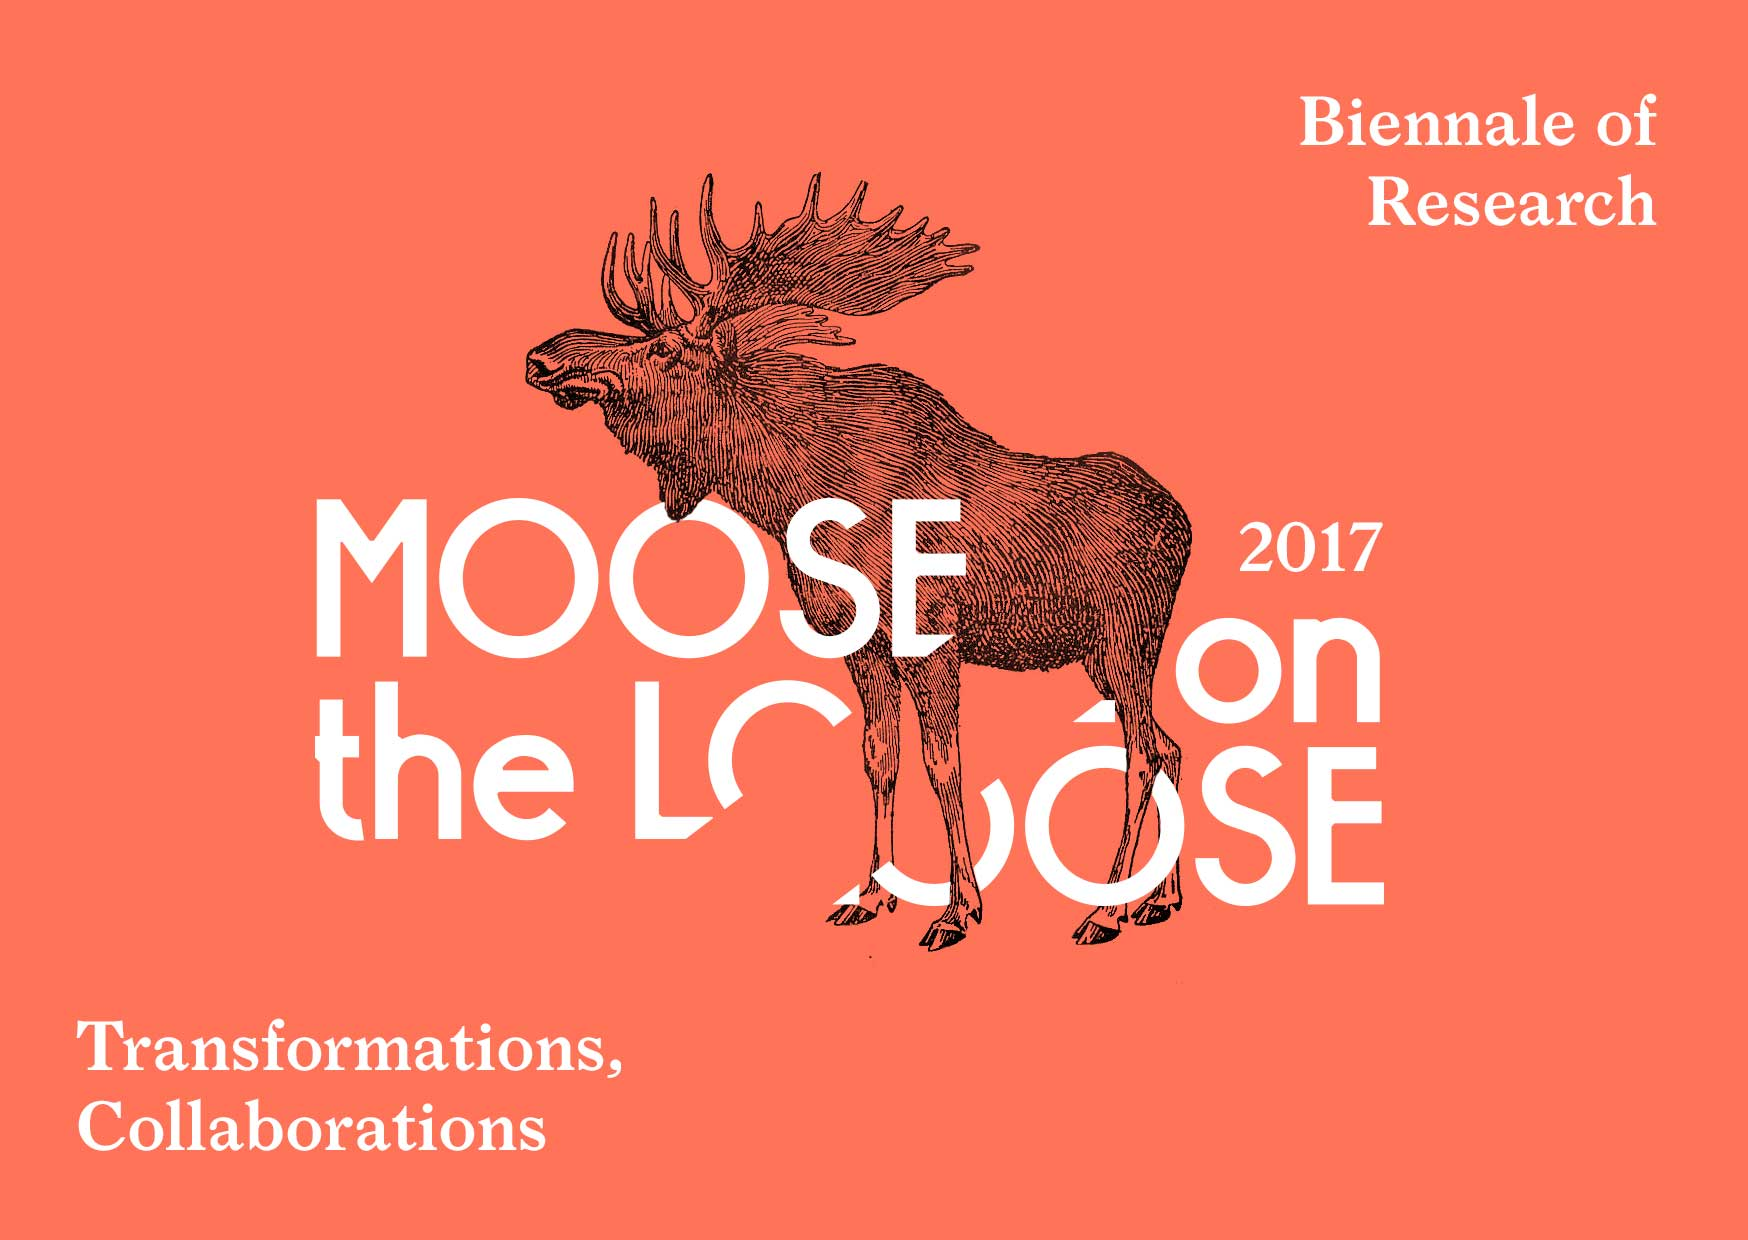 Moose-on-the-Loose---identity-2017---draft-3c